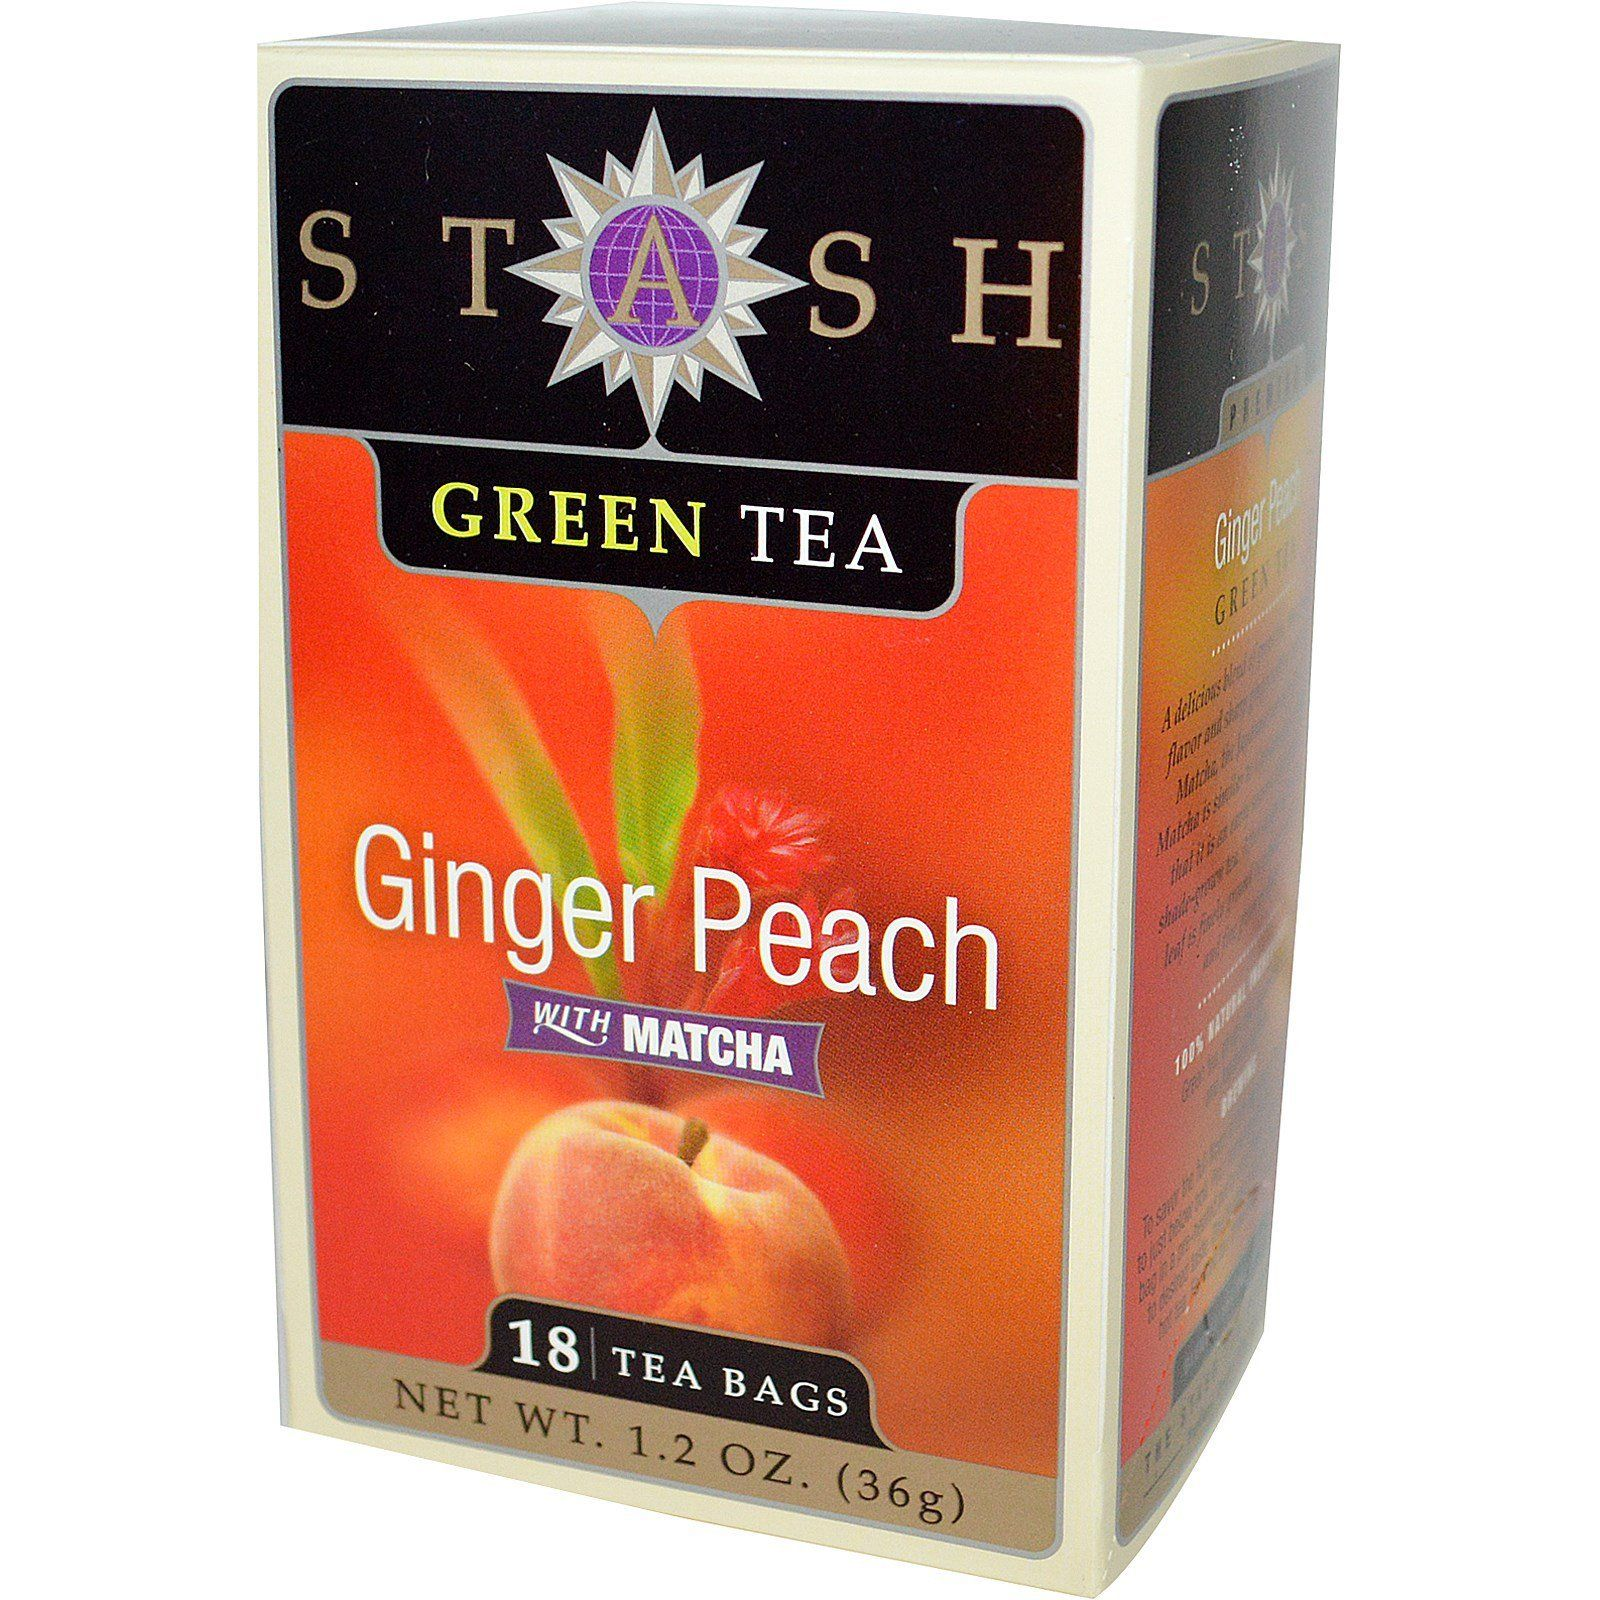 Food & Drink - Stash - Ginger Peach Green Tea, 18 Bags